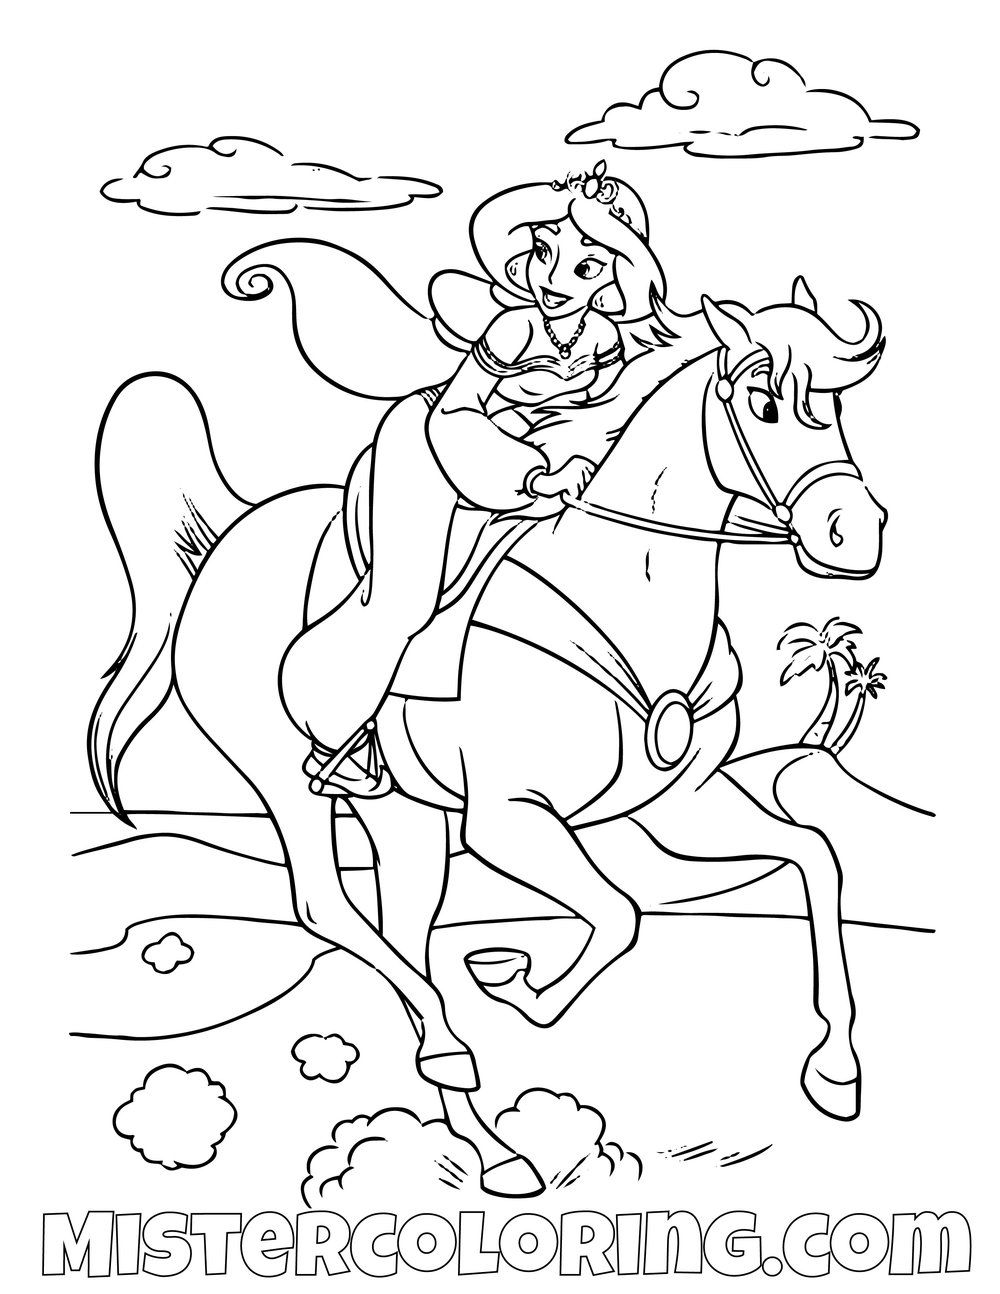 Princess Jasmine Riding Sahara Aladdin Coloring Page For Kids